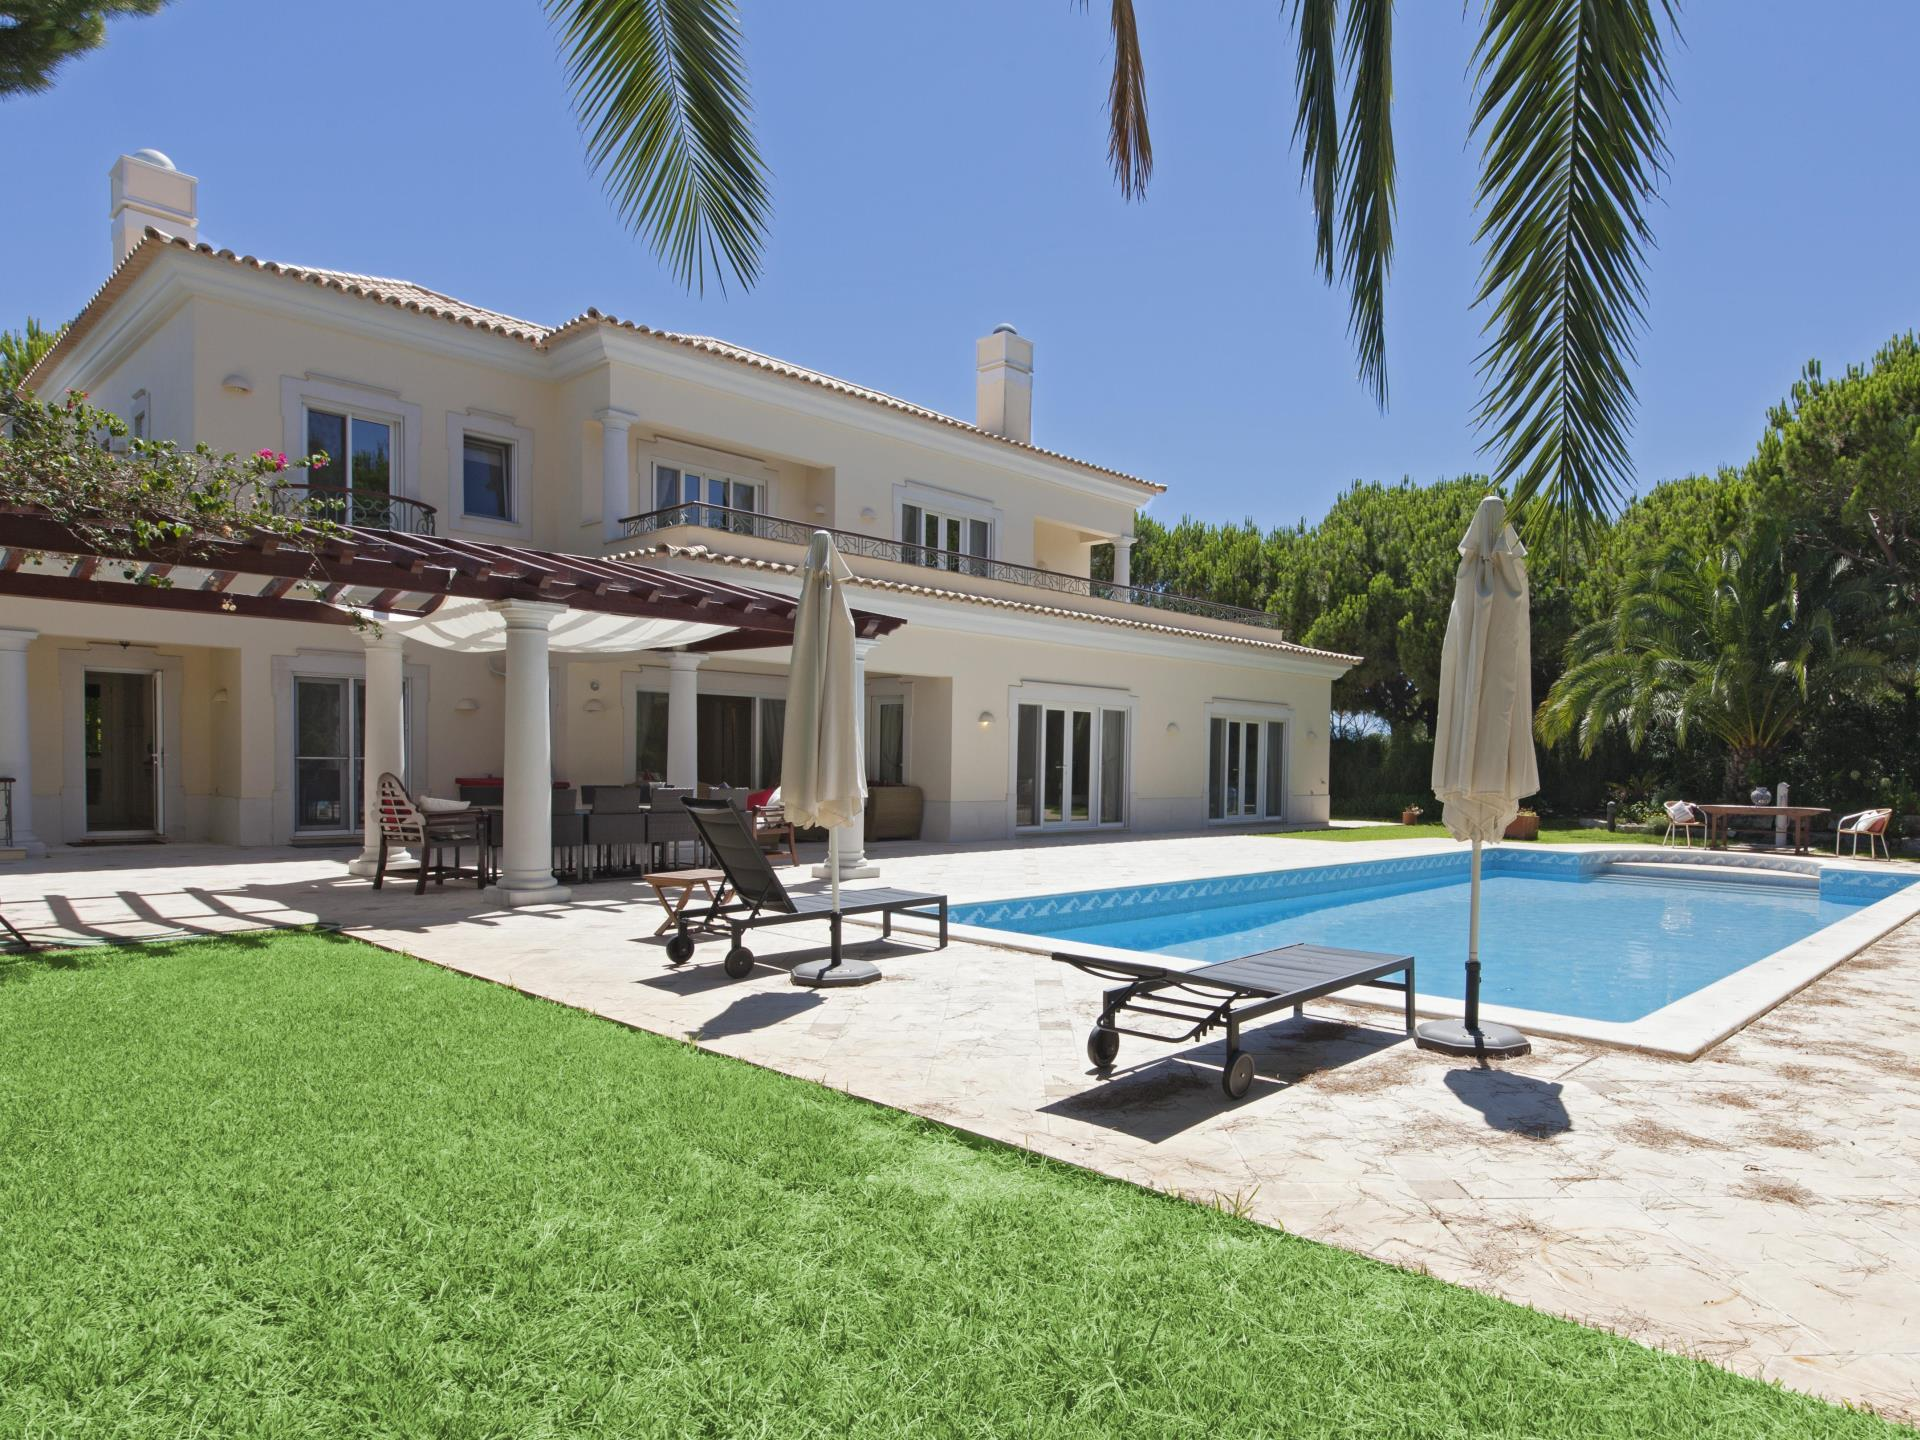 Tek Ailelik Ev için Satış at Detached house, 5 bedrooms, for Sale Loule, Algarve Portekiz